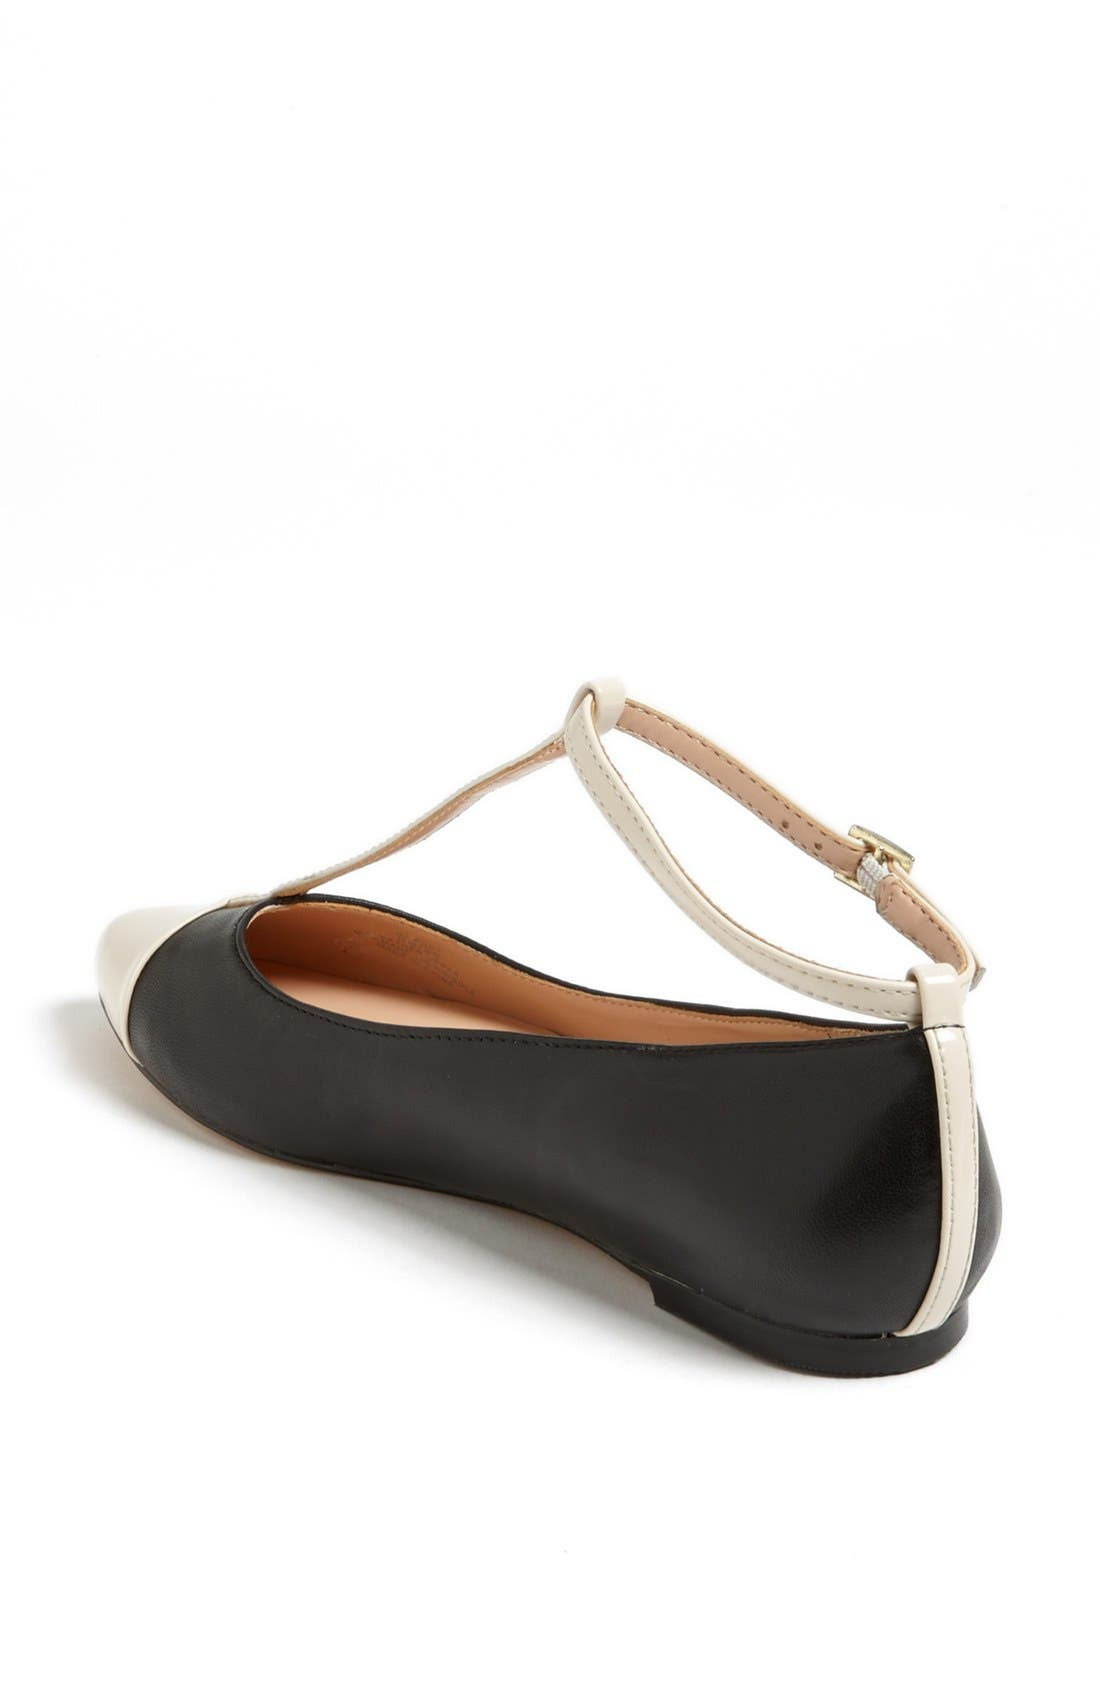 ,                             Julianne Hough for Sole Society 'Addy' Flat,                             Alternate thumbnail 4, color,                             001